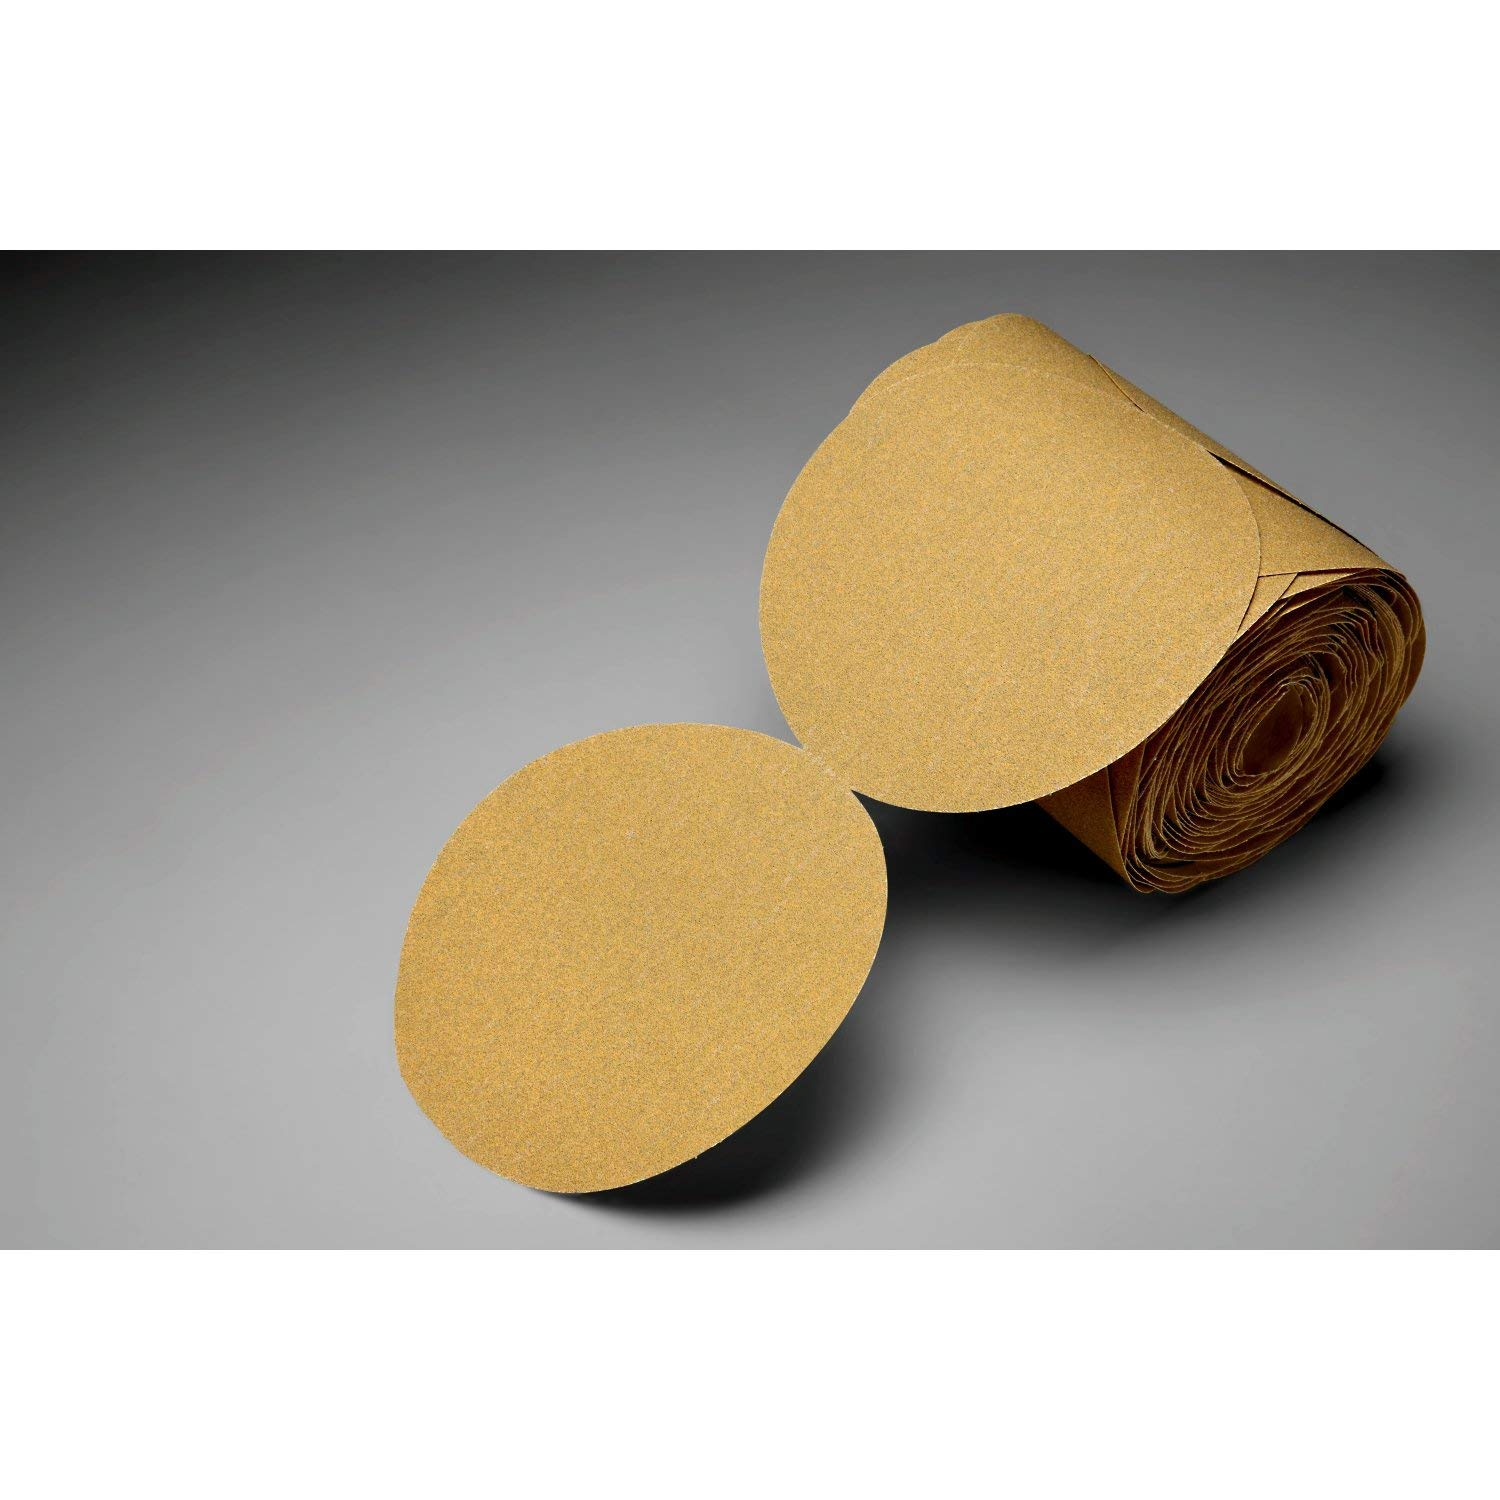 3M Stikit Gold Paper Disc Roll 216U, P180 A-weight, 6 in x NH, Die 600Z, 175 discs per roll